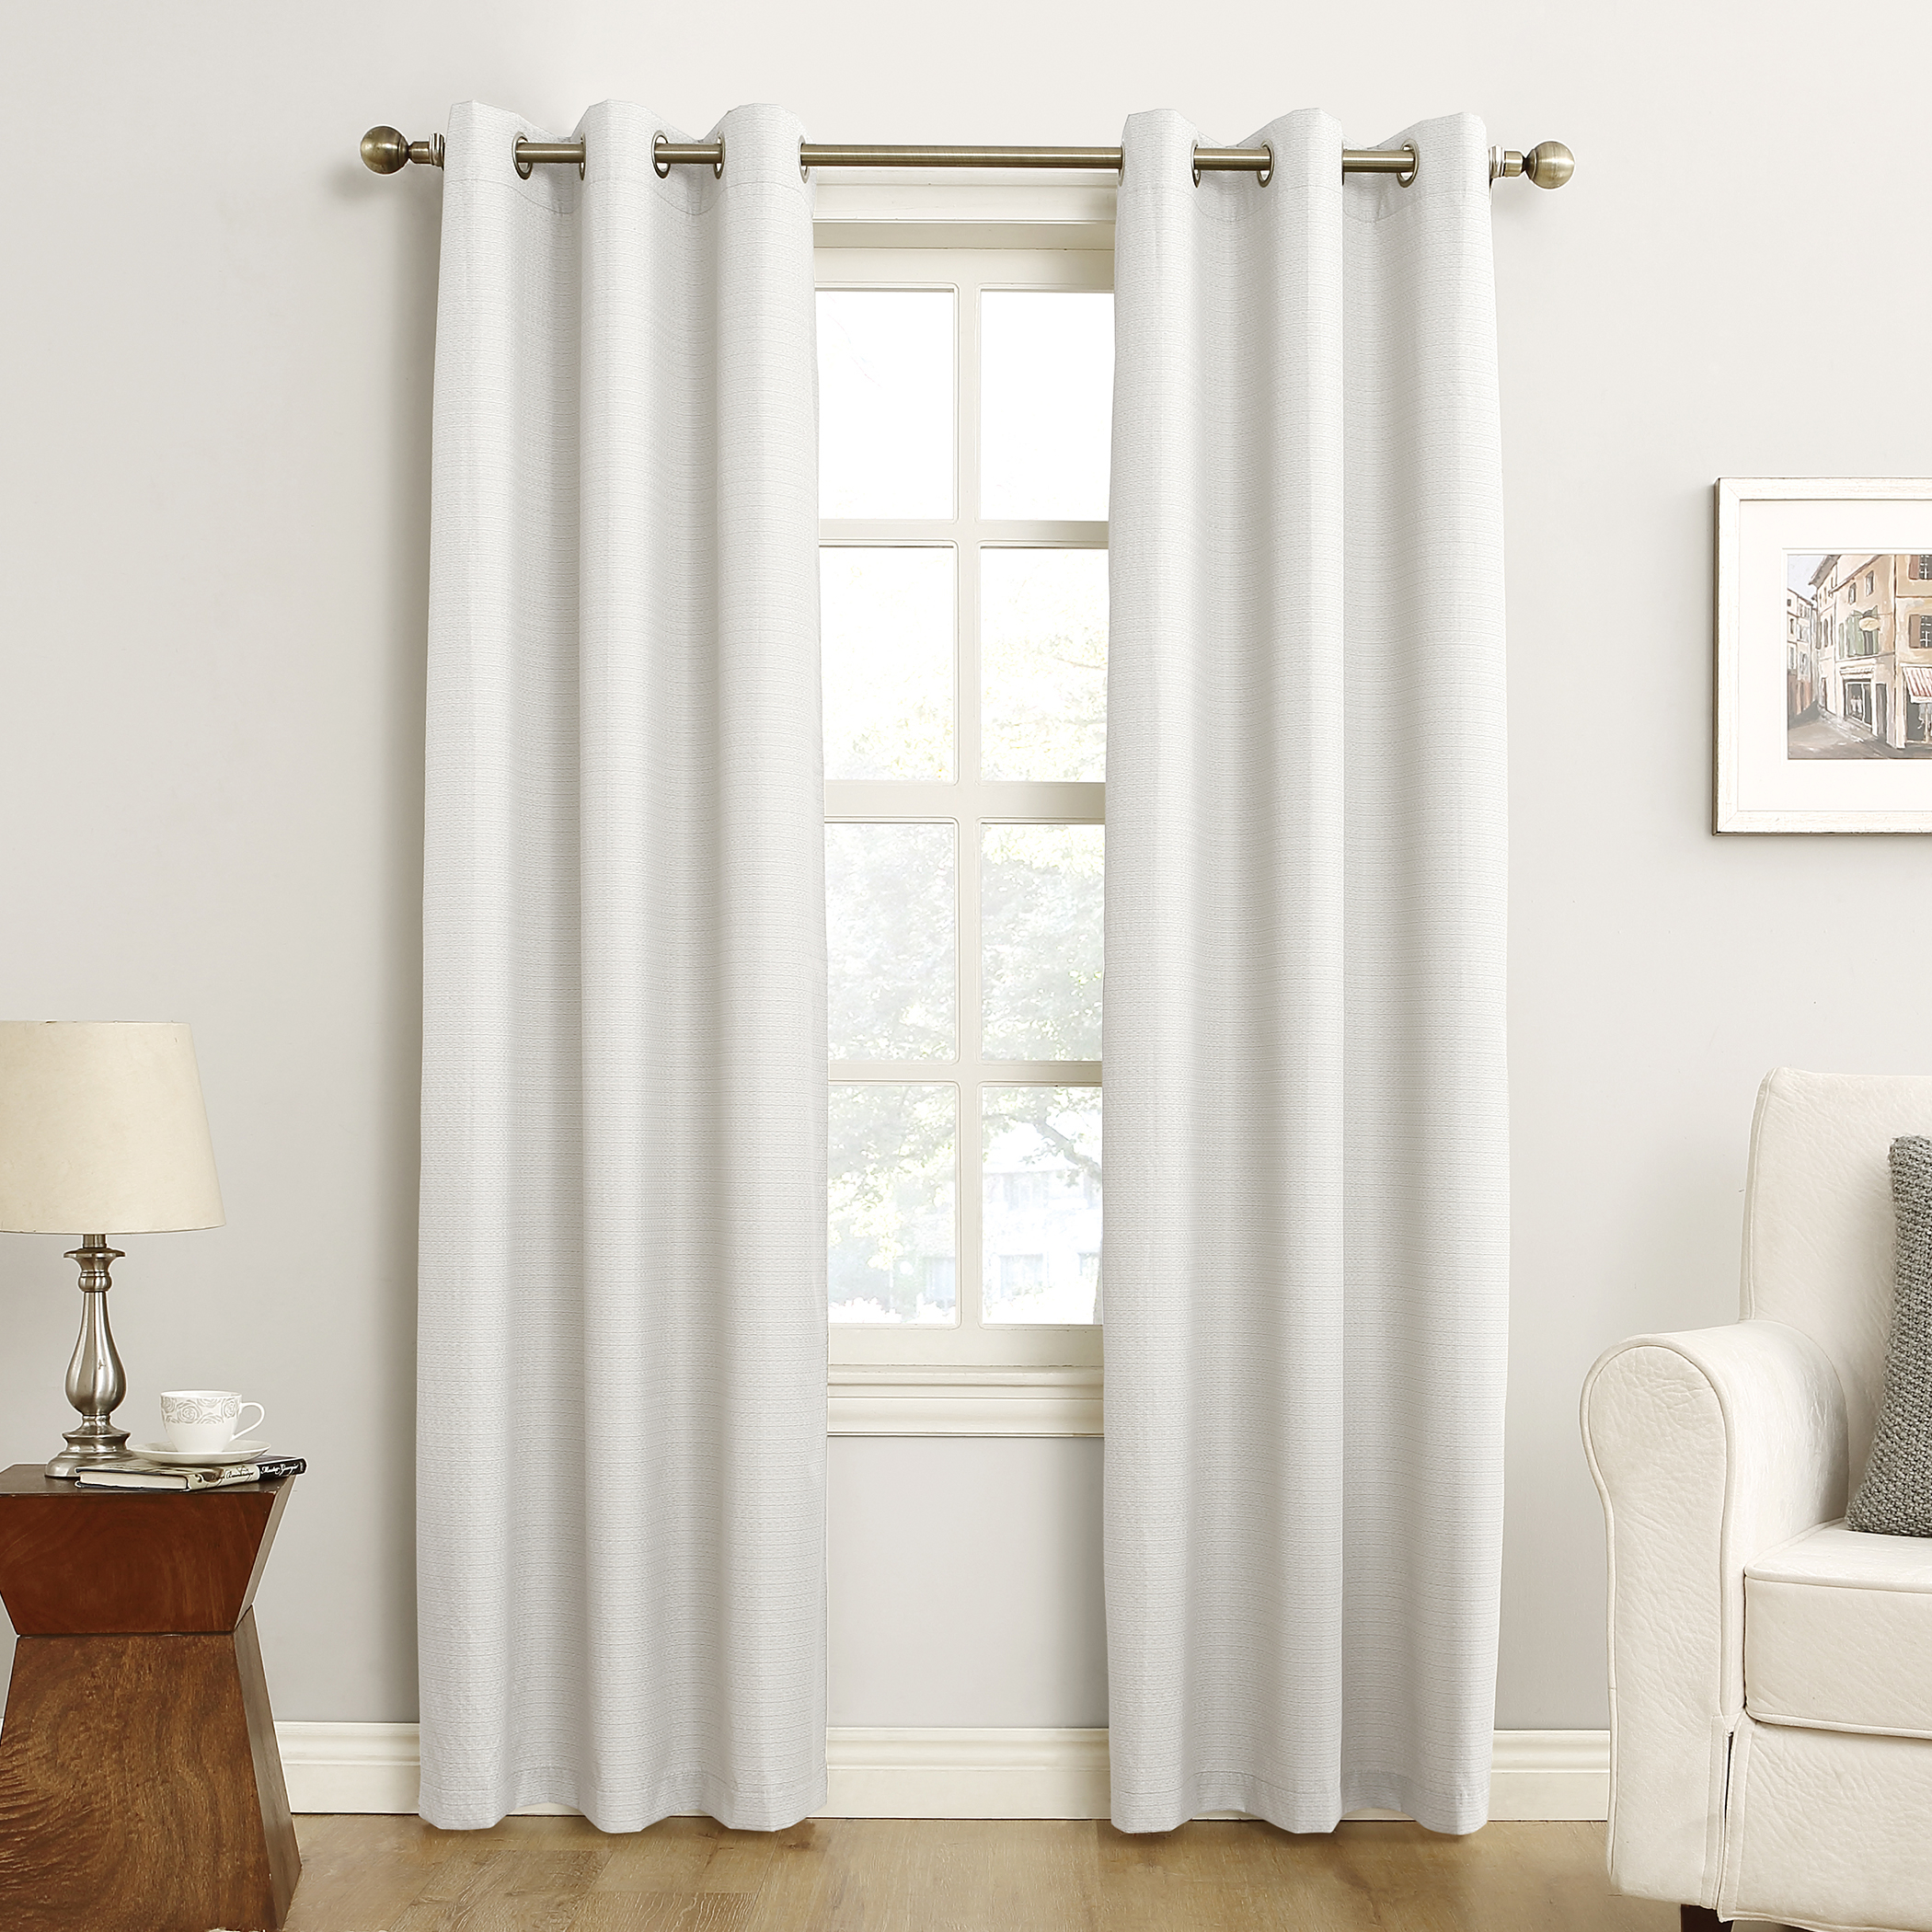 Sun Zero Cooper Textured Thermal Lined Room Darkening Energy Efficient Grommet Curtain Panel With Cooper Textured Thermal Insulated Grommet Curtain Panels (View 5 of 20)